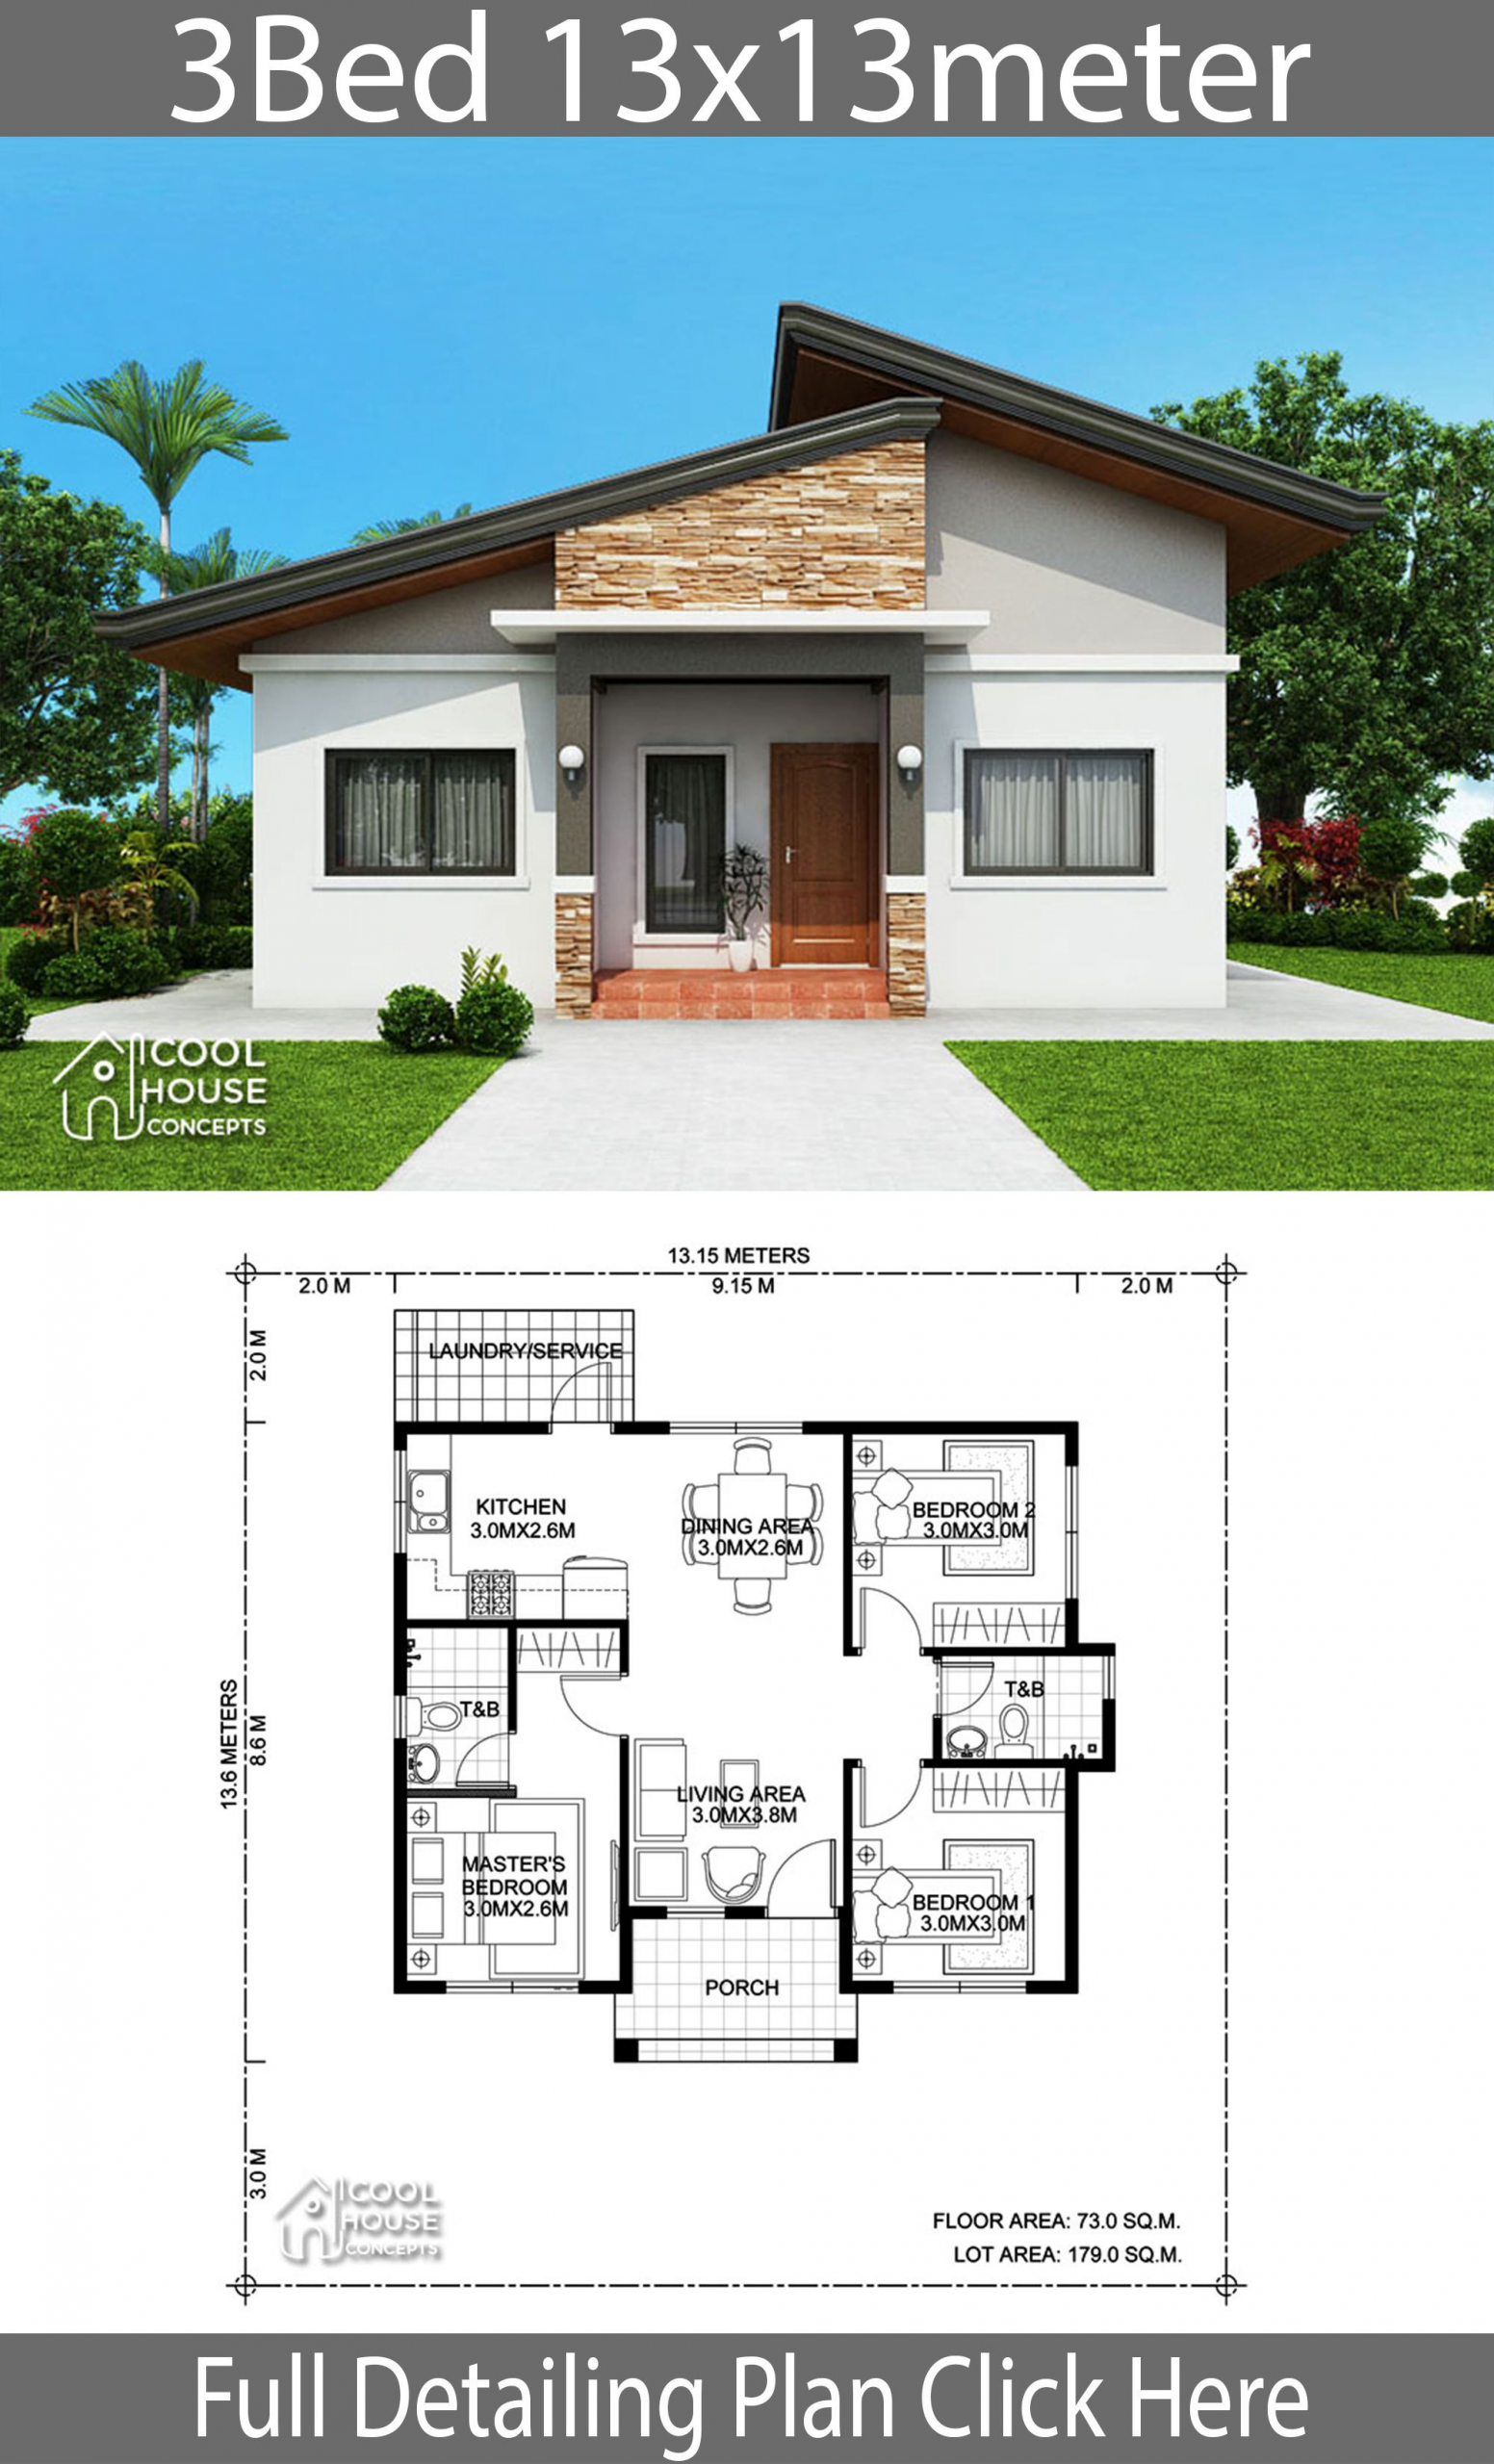 Fresh House Design Ideas Floor Plans Layout 5 Home Plans 11x13m 11x14m 12x10m 13x12m 1 Modern Bungalow House Design Modern Bungalow House Beautiful House Plans